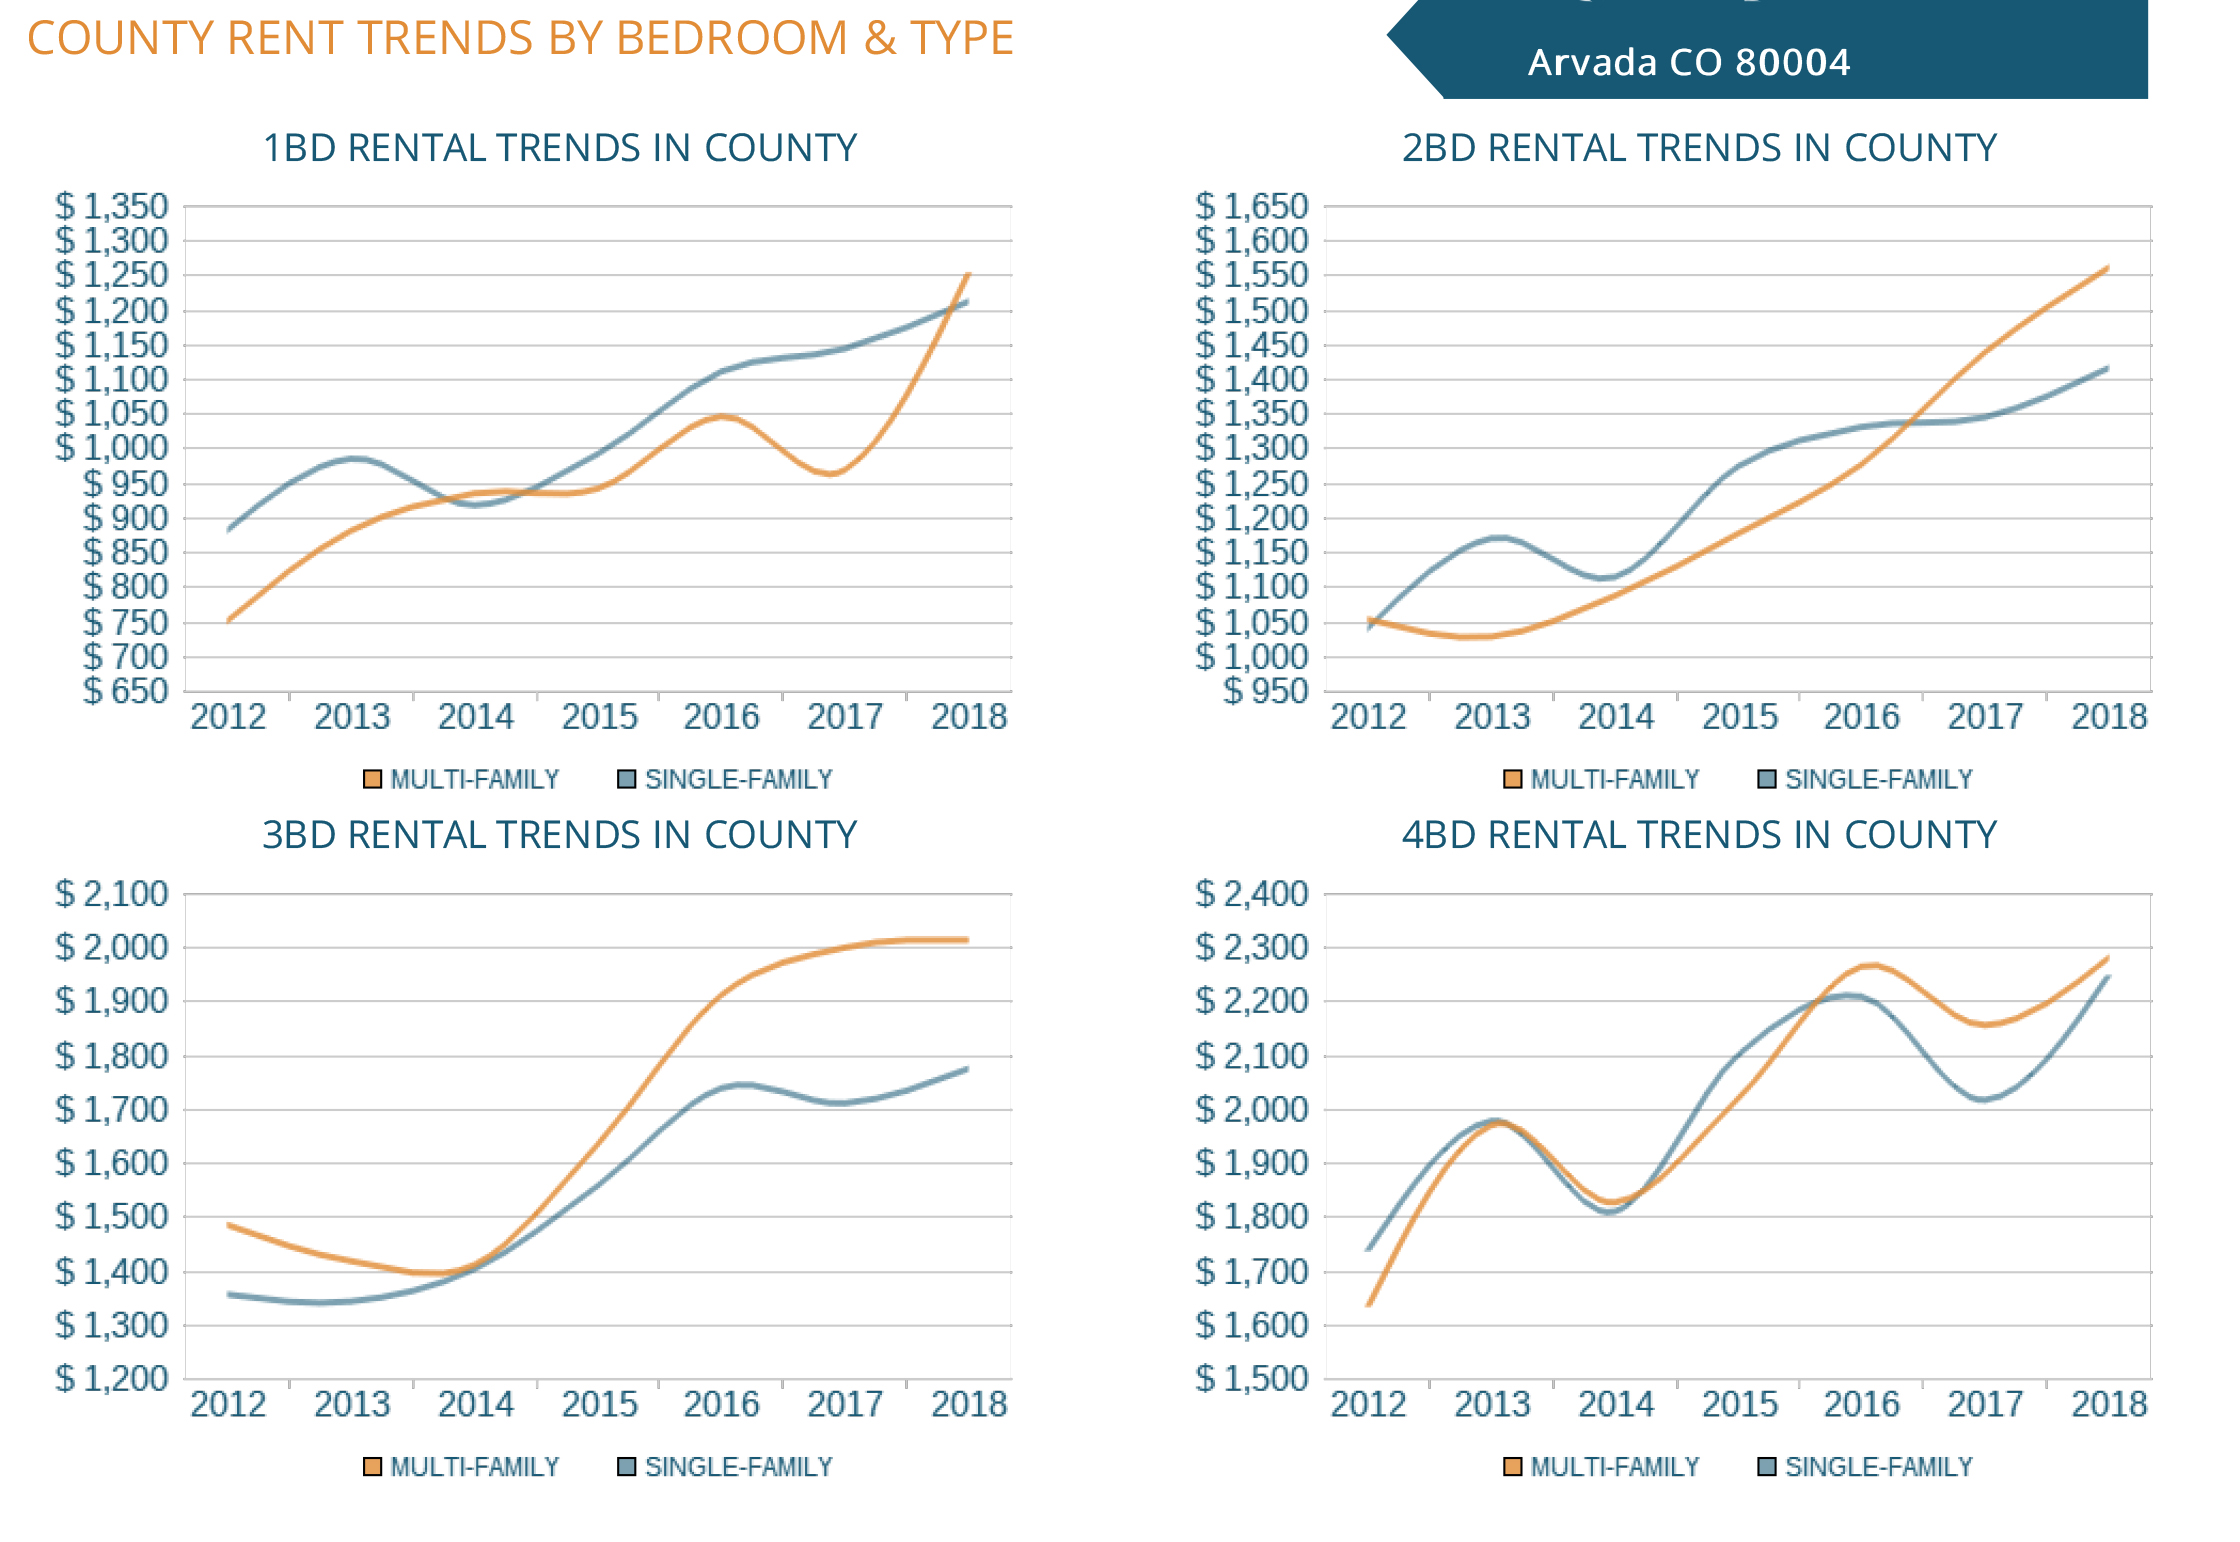 Arvada County Rent Trends By Bedroom